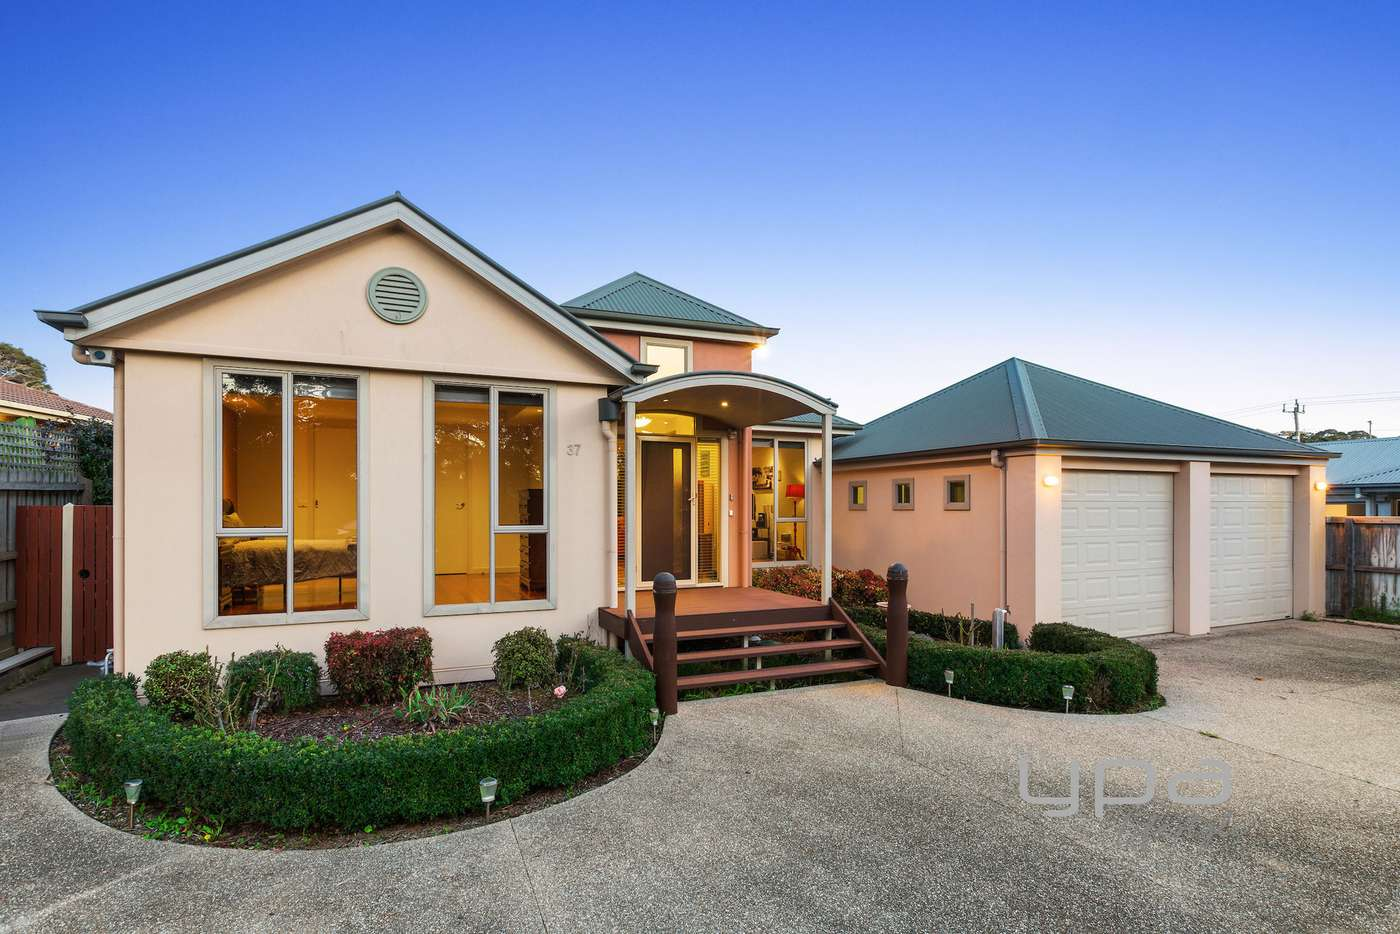 Main view of Homely house listing, 37 Revell Street, Blairgowrie VIC 3942